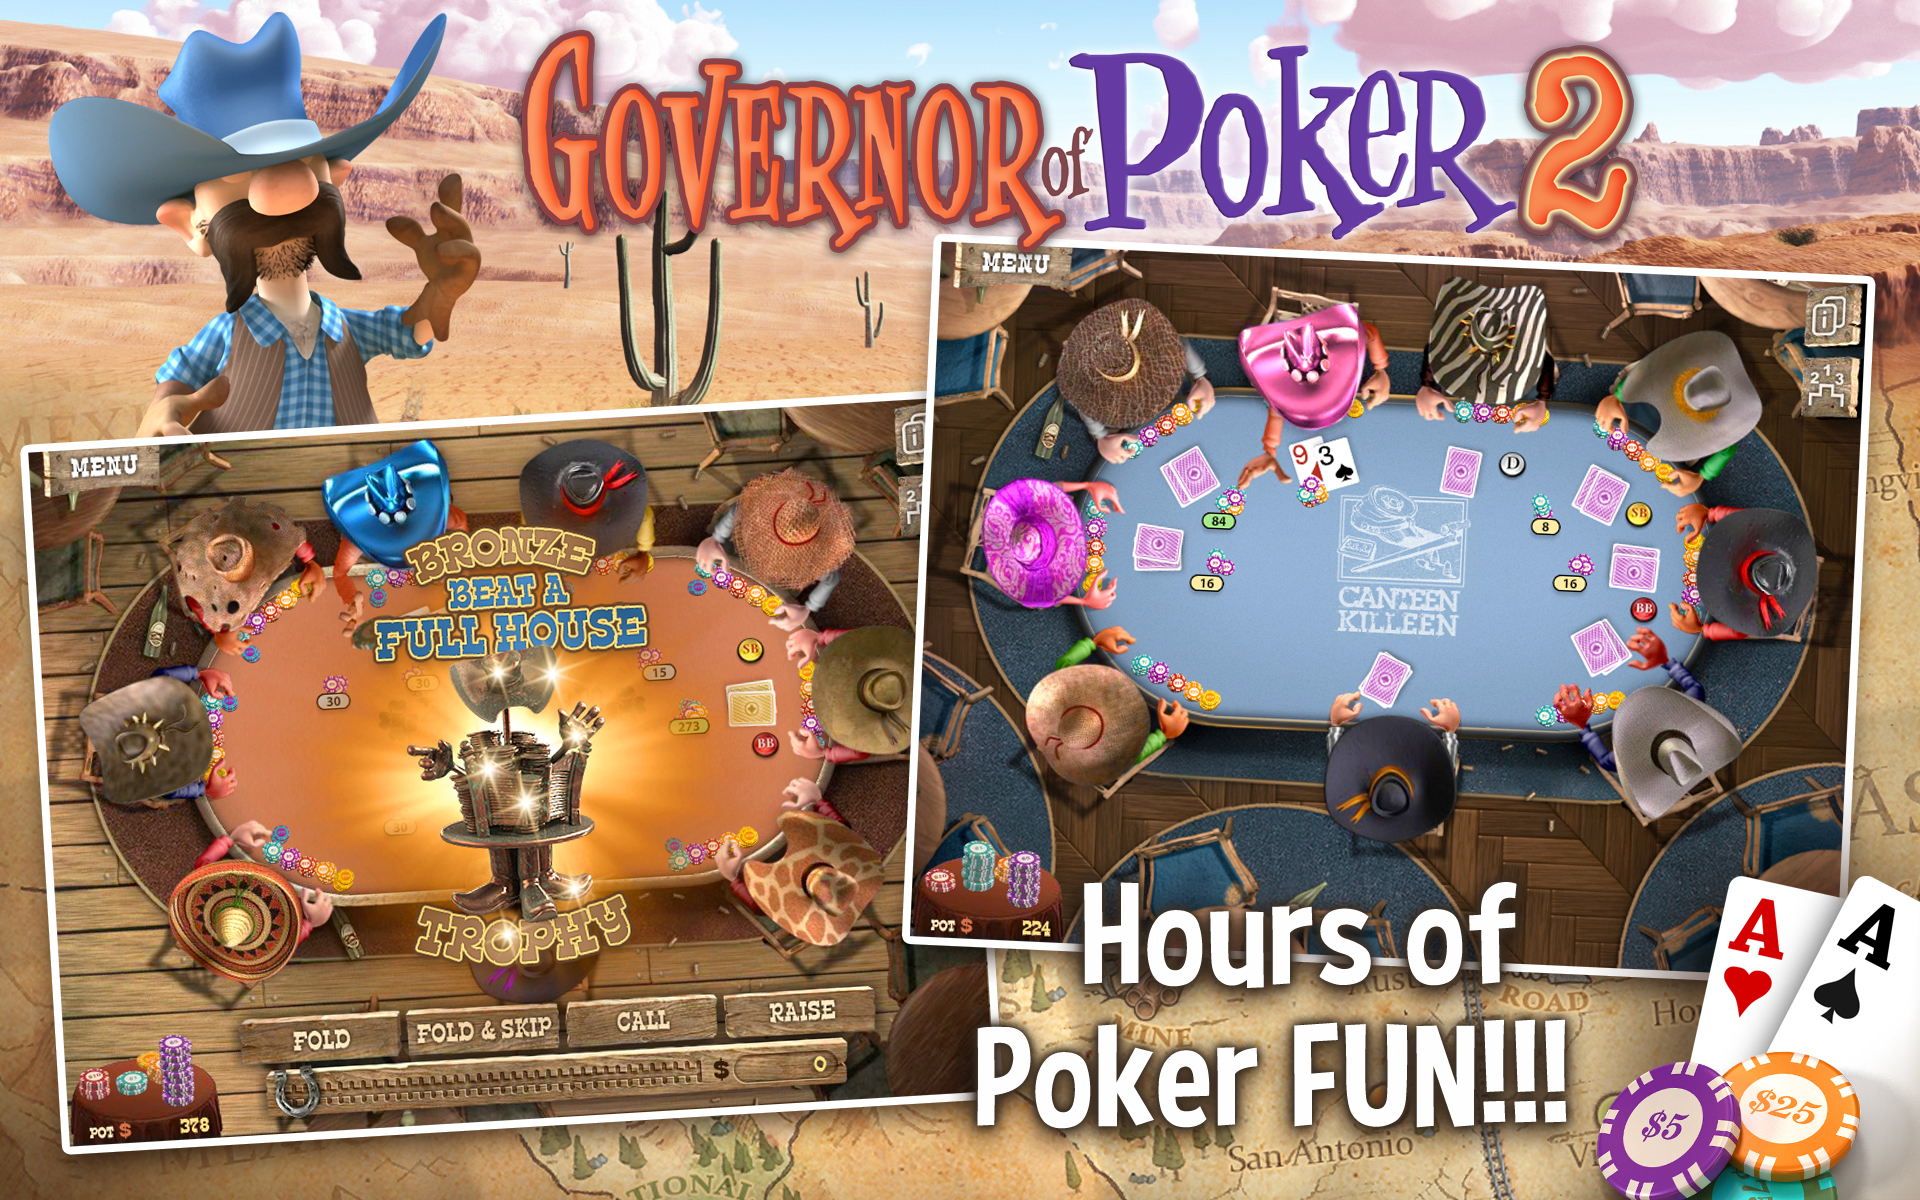 Government Poker